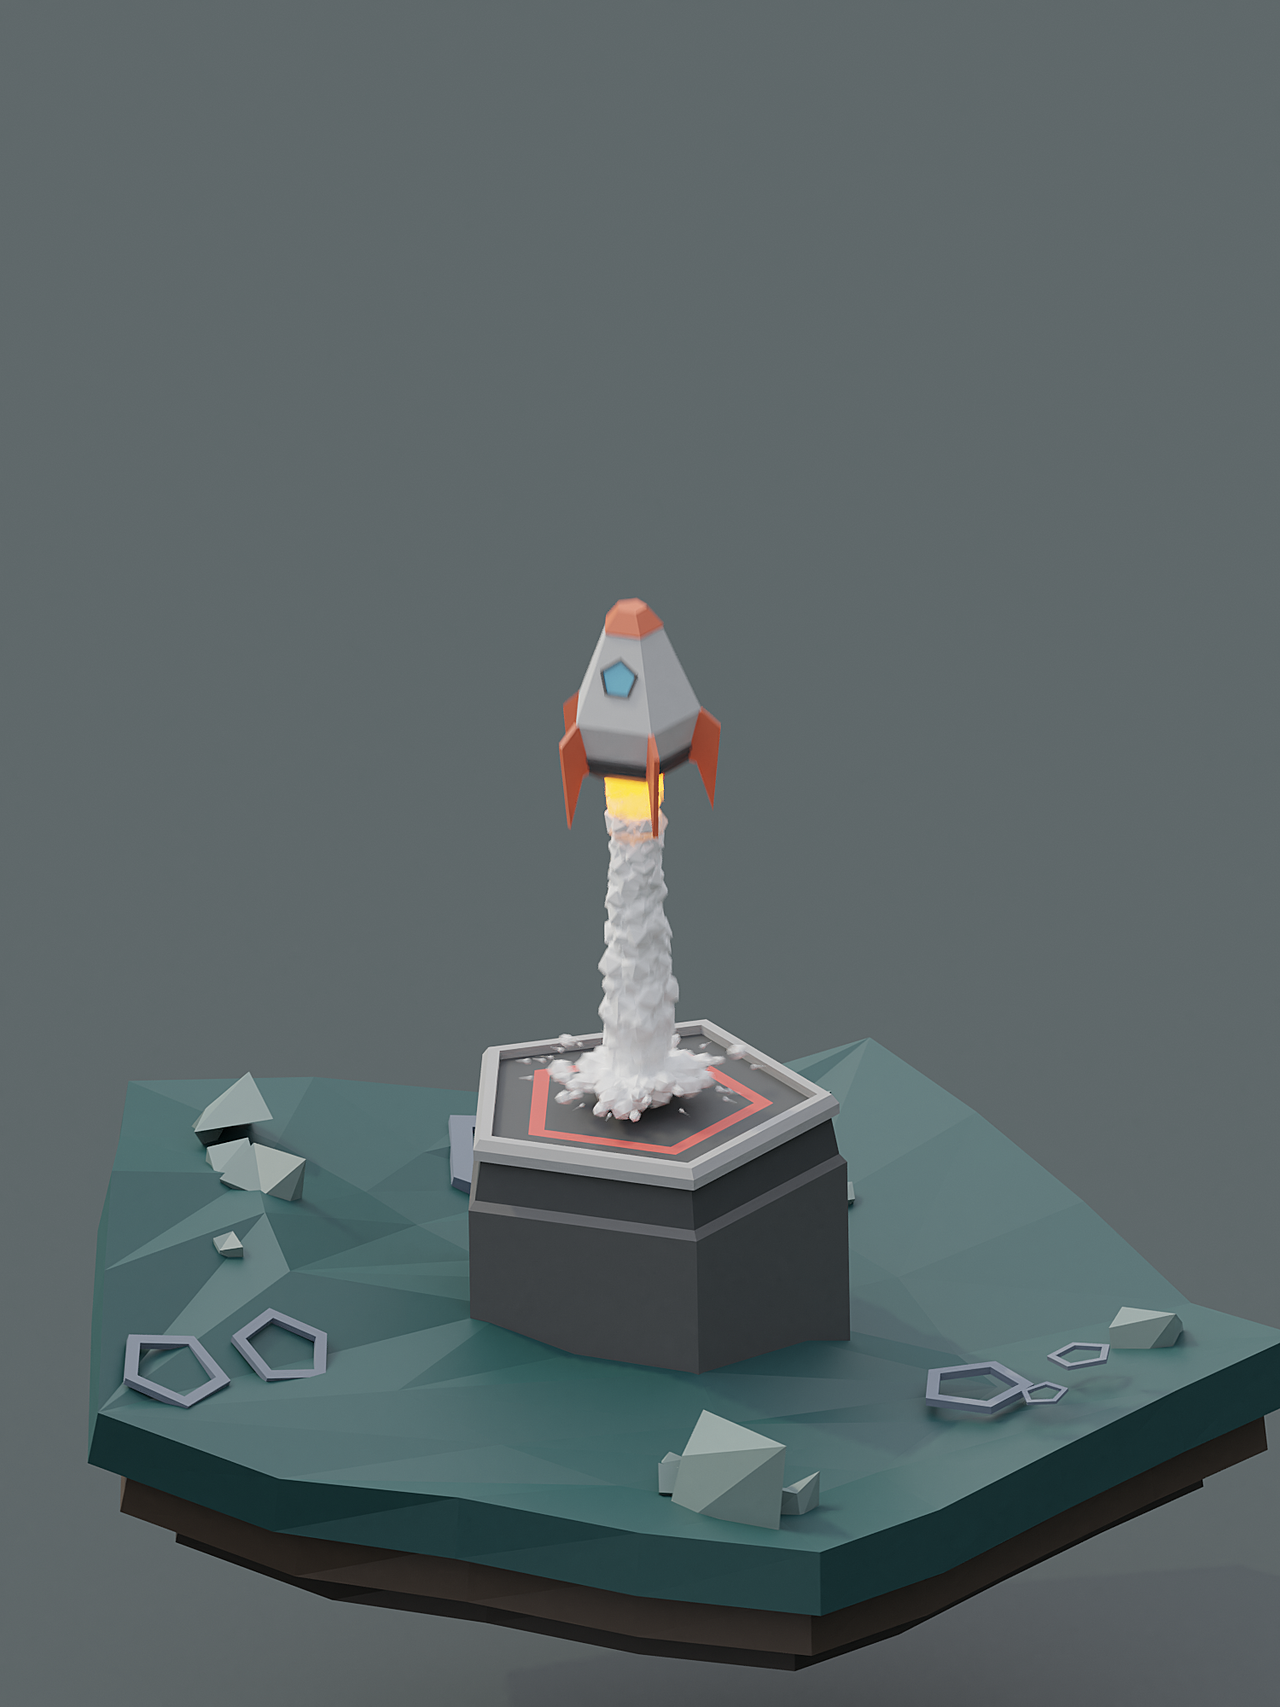 [From Tutorial] Animated Low-Poly Rocket